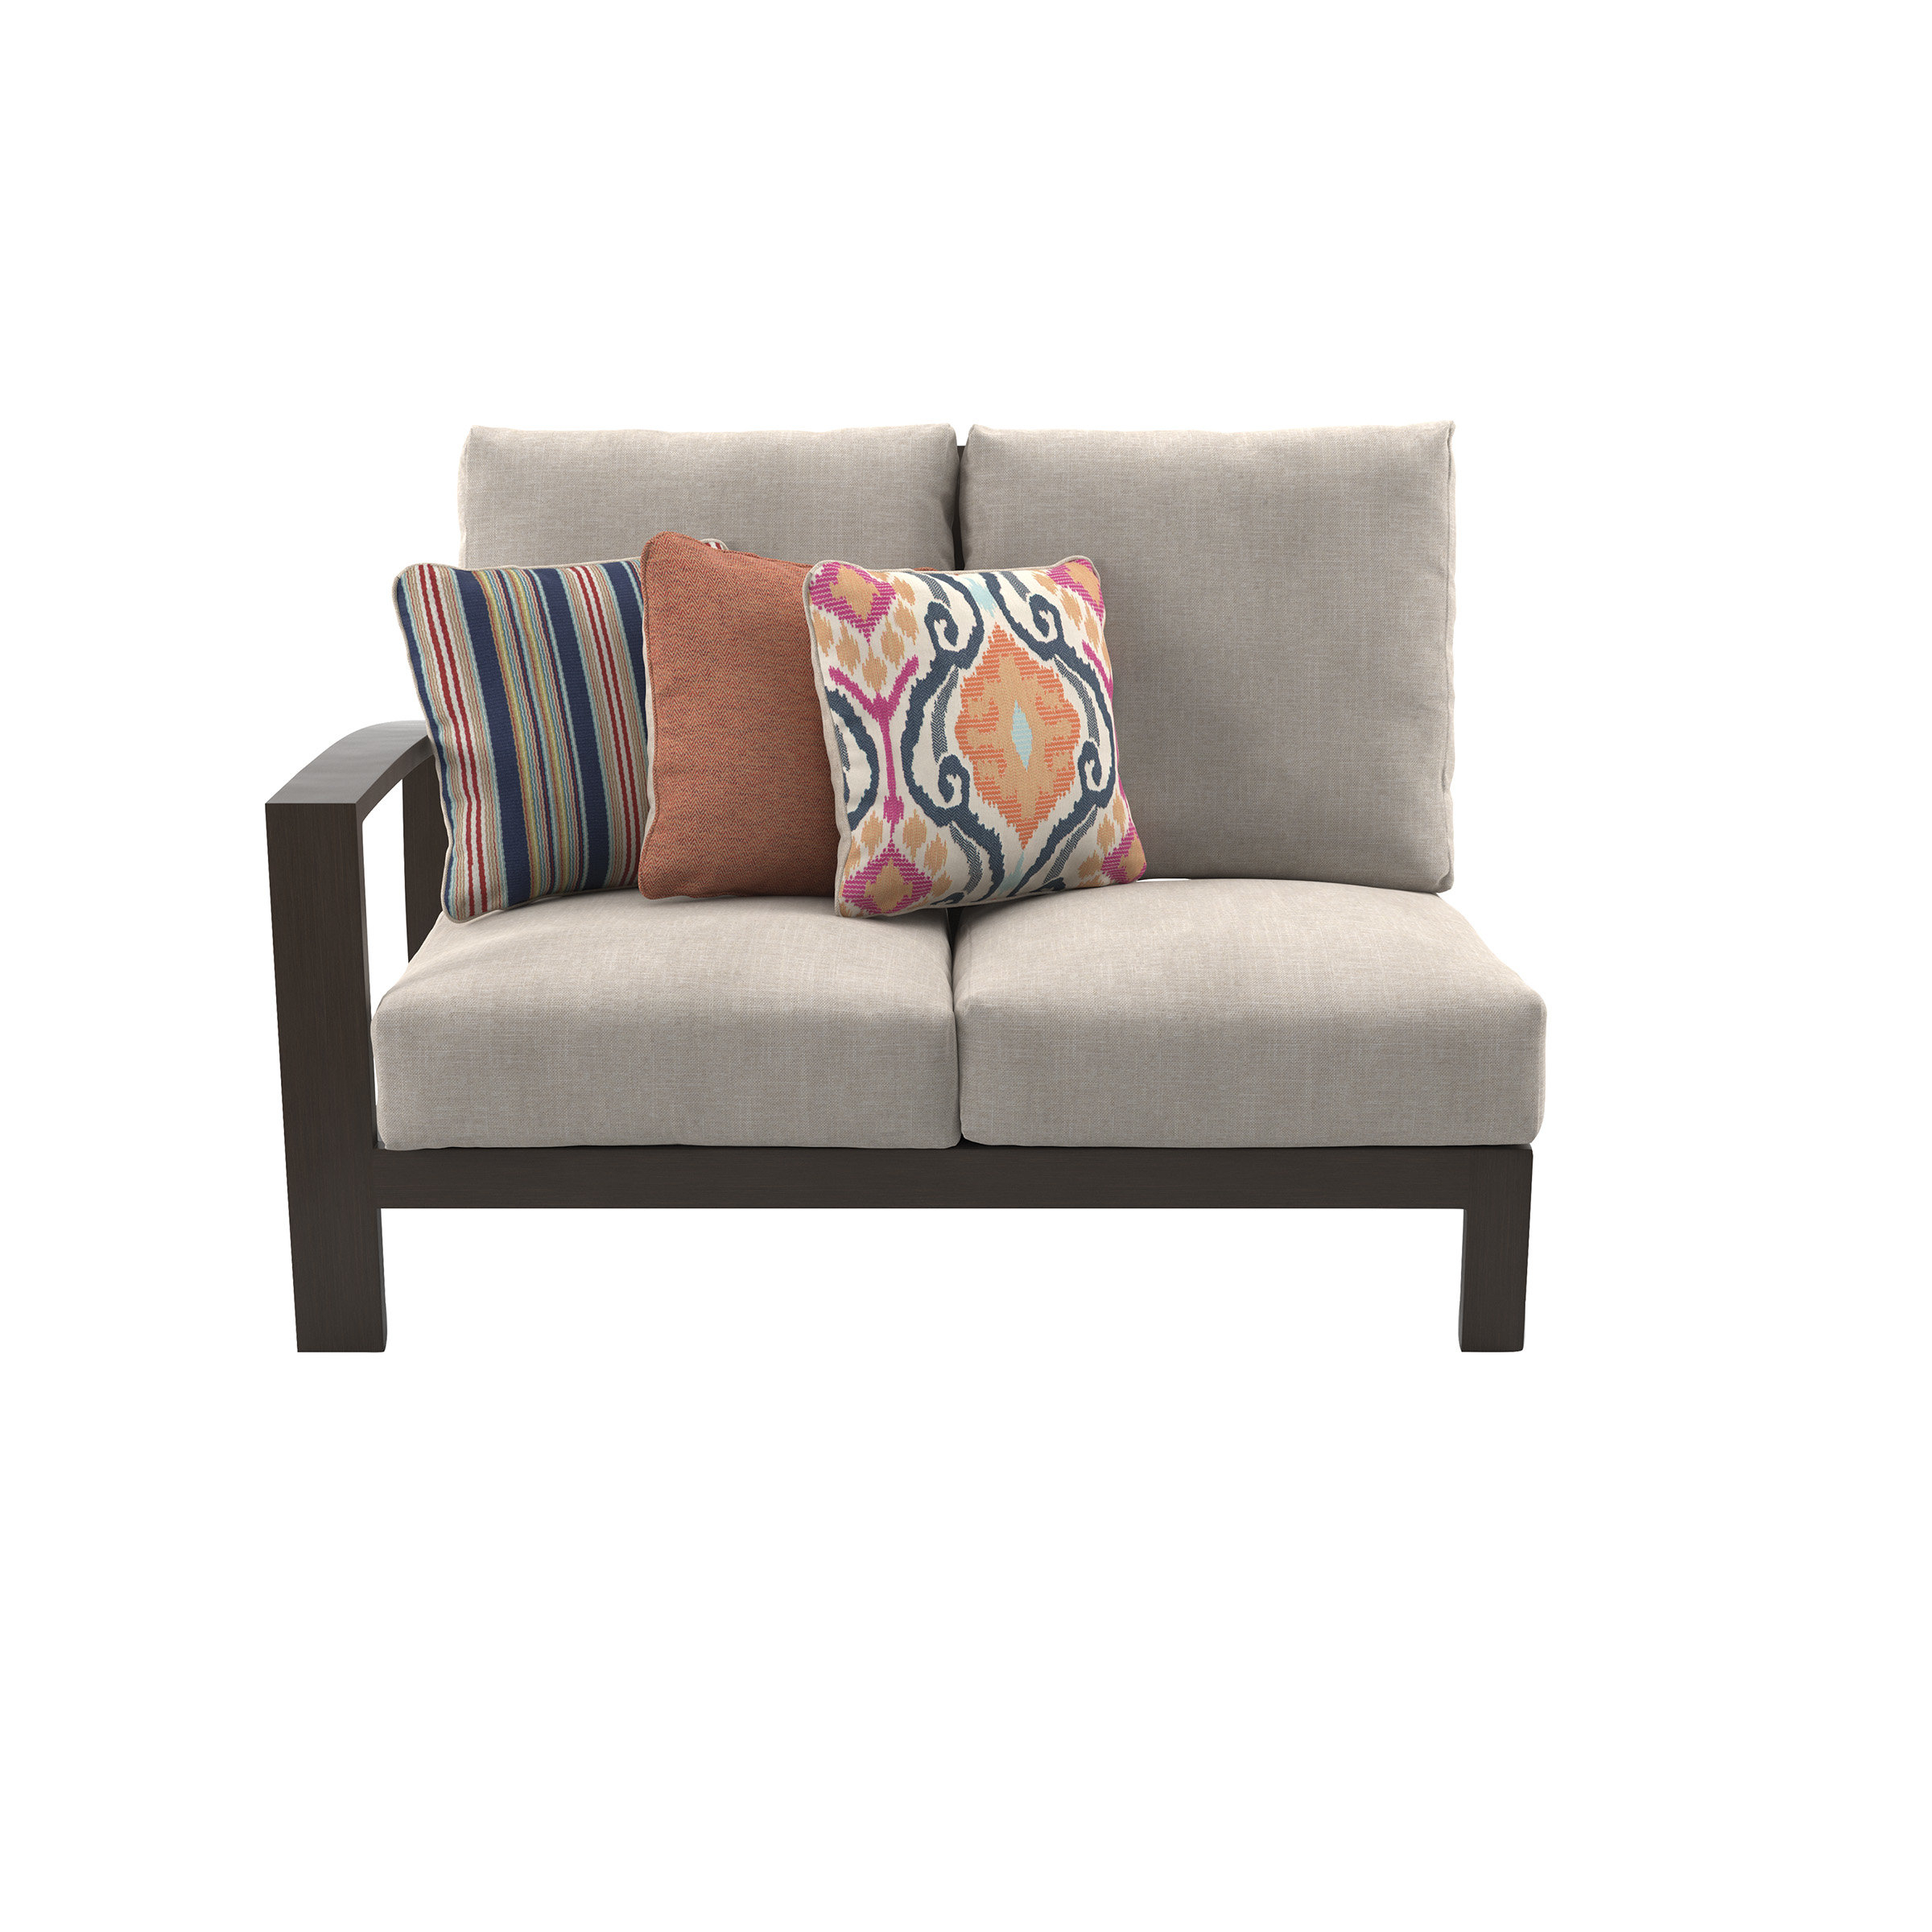 Widely Used Jay Loveseat With Cushions Inside Clifford Loveseats With Cushion (View 20 of 20)